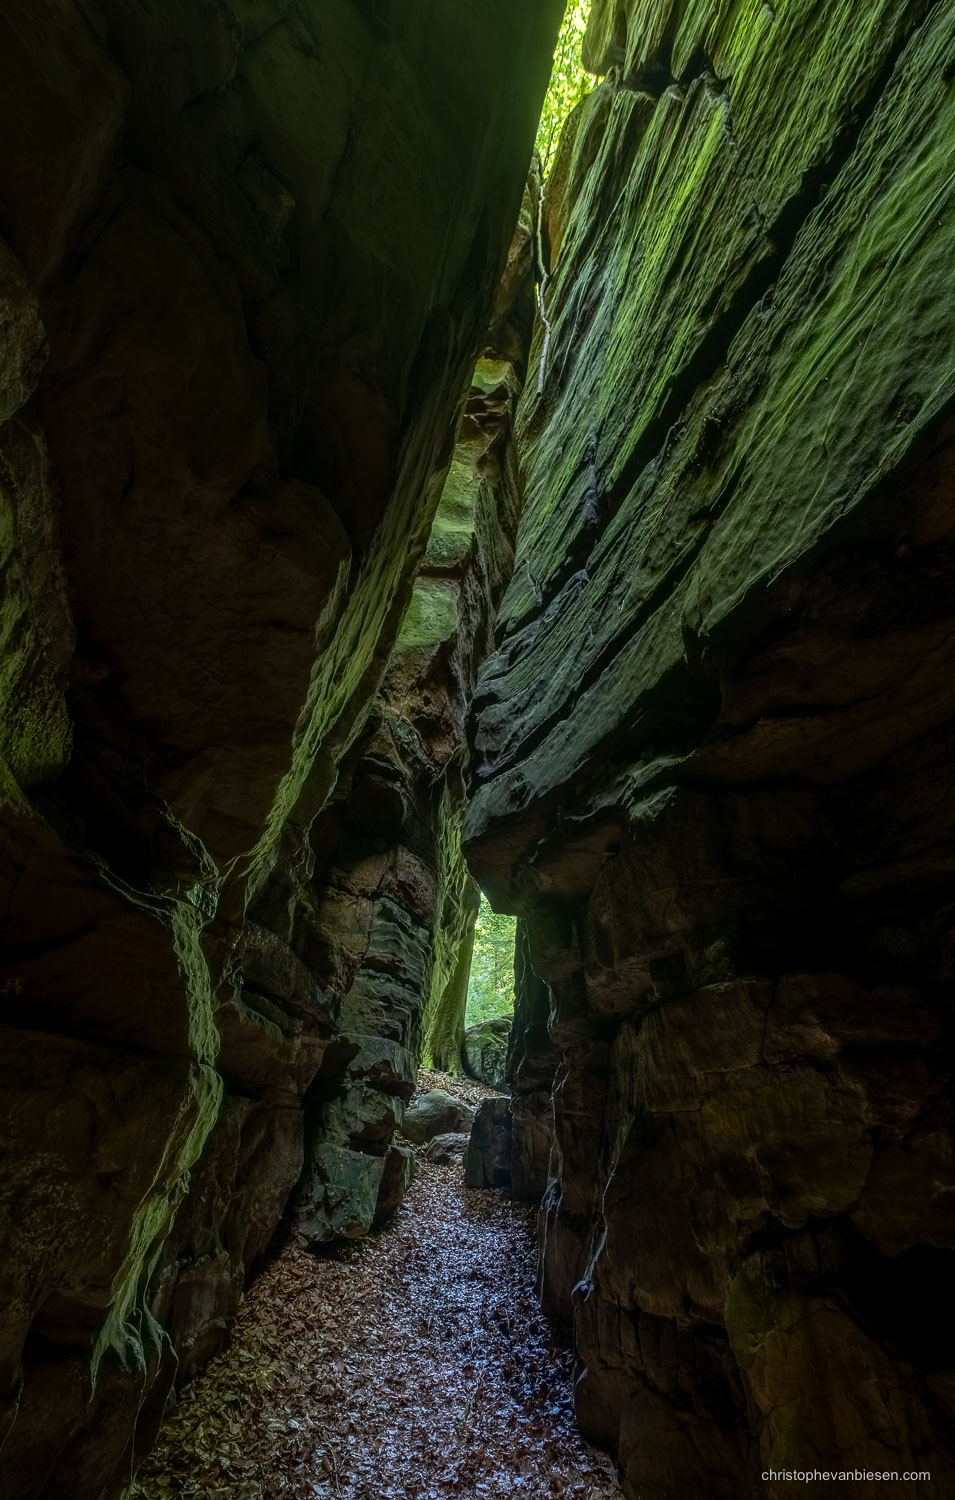 Photography Workshop - Luxembourg - Mullerthal - Narrow passage in the Mullerthal's Goldfralay caves in eastern Luxembourg - Green Canyon